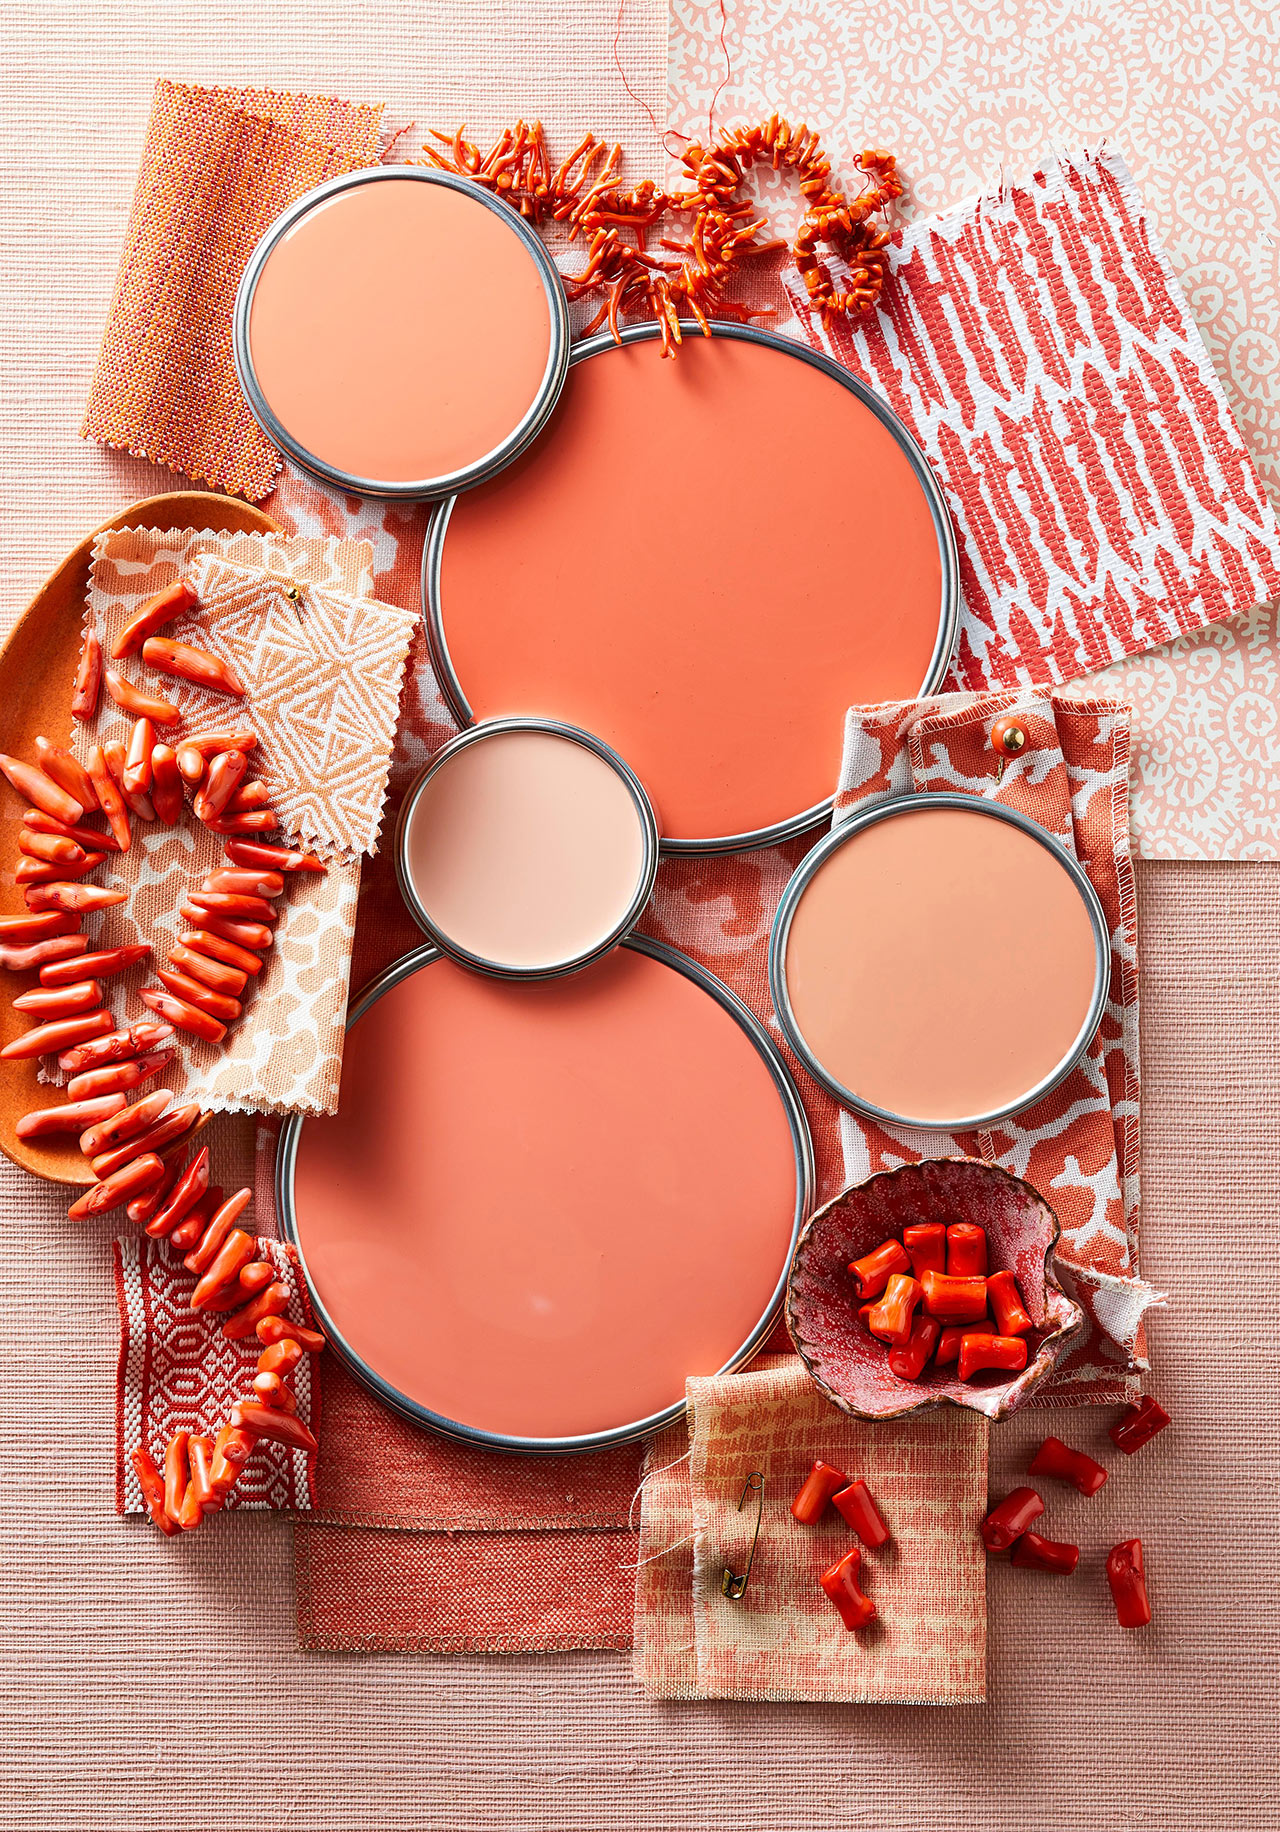 coral paint lids with fabric beads and ceramic